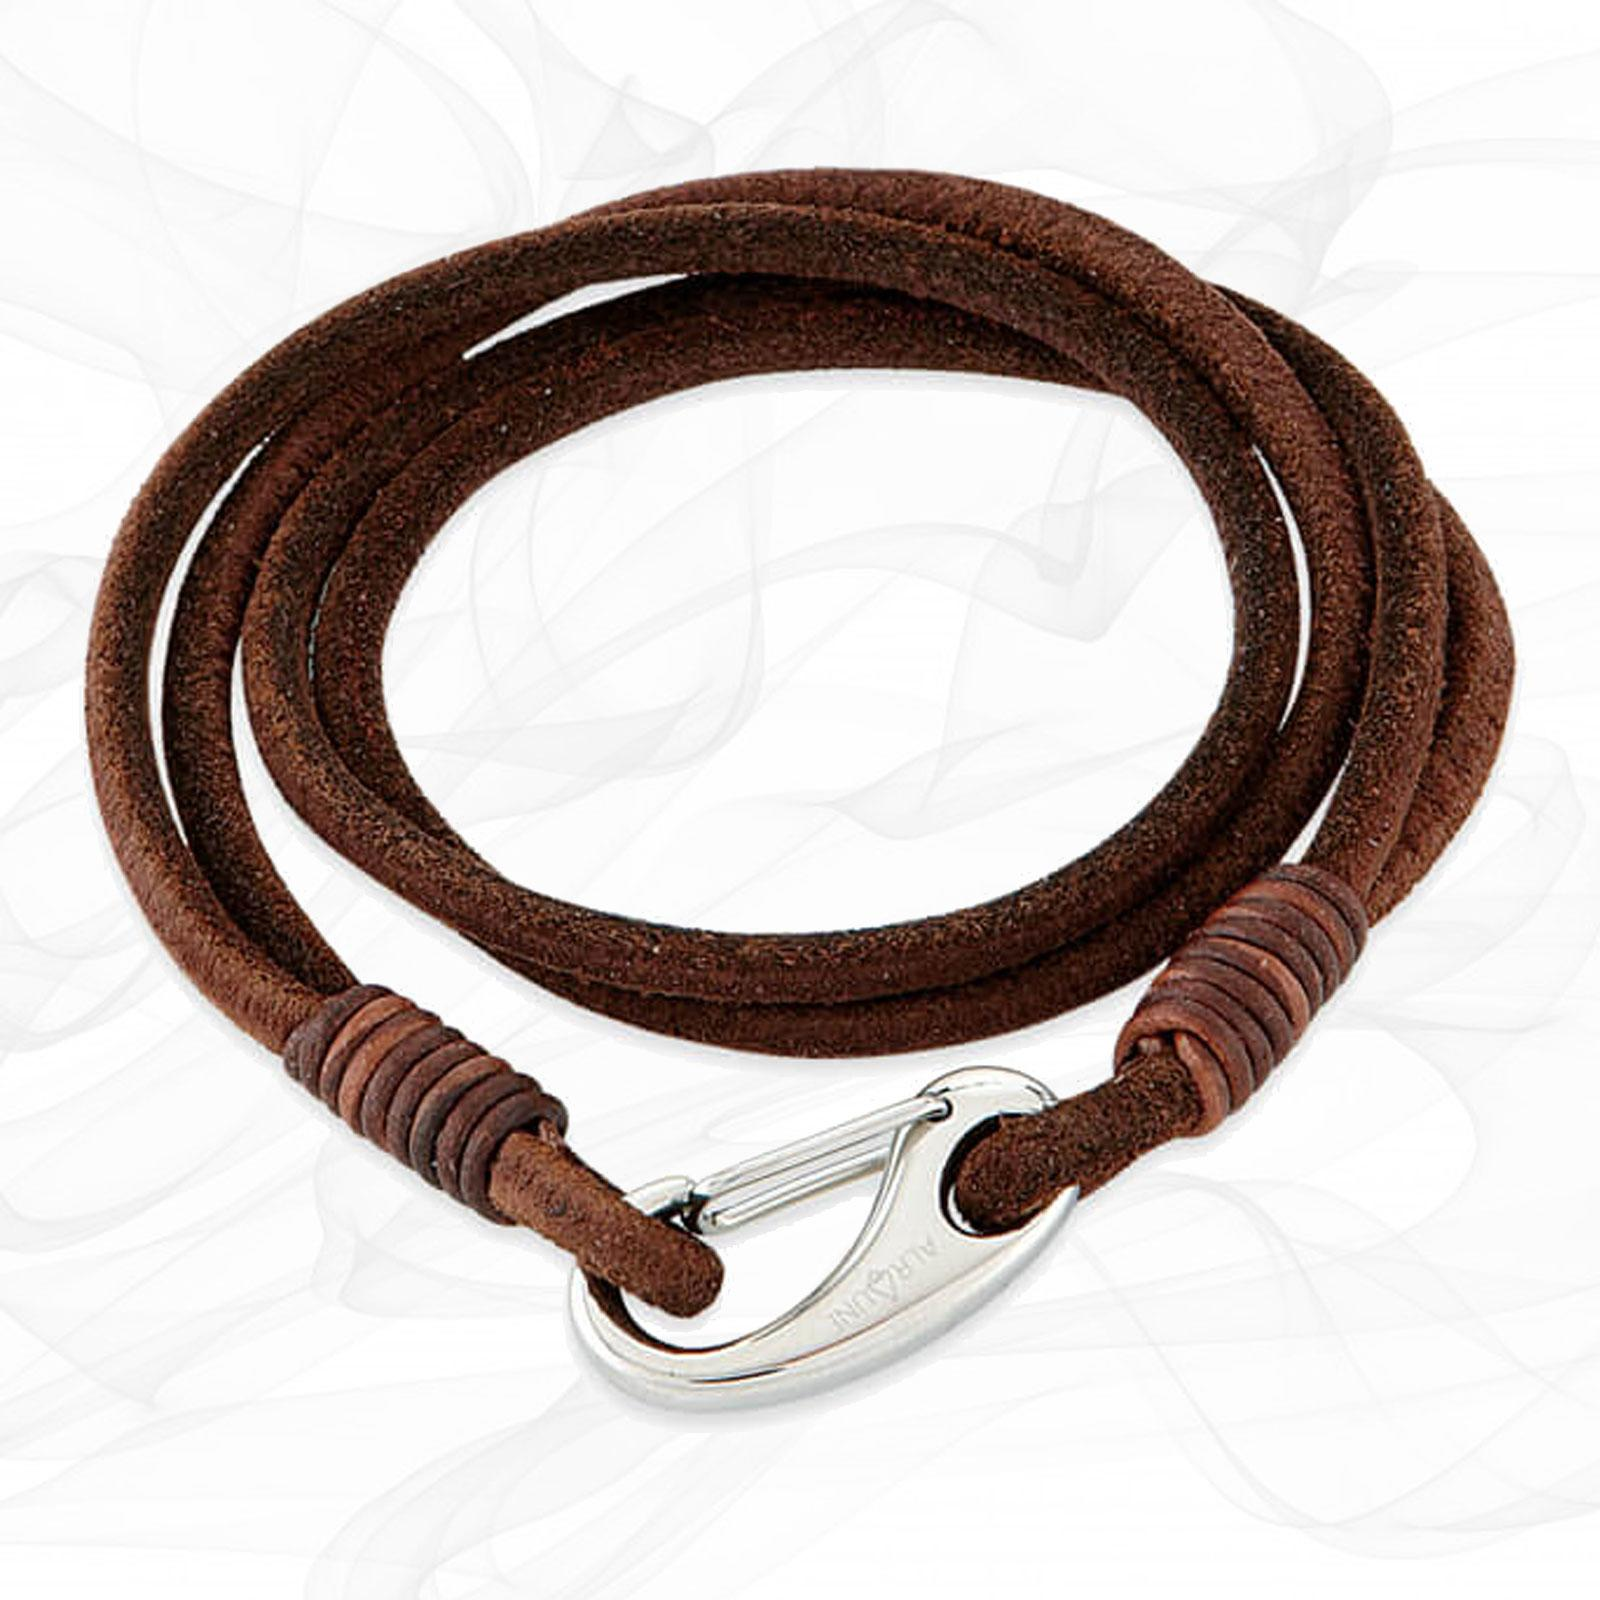 Wild Brown Quad Wrap Suede Leather Bracelet with Steel Lobster Clasp by Alraune